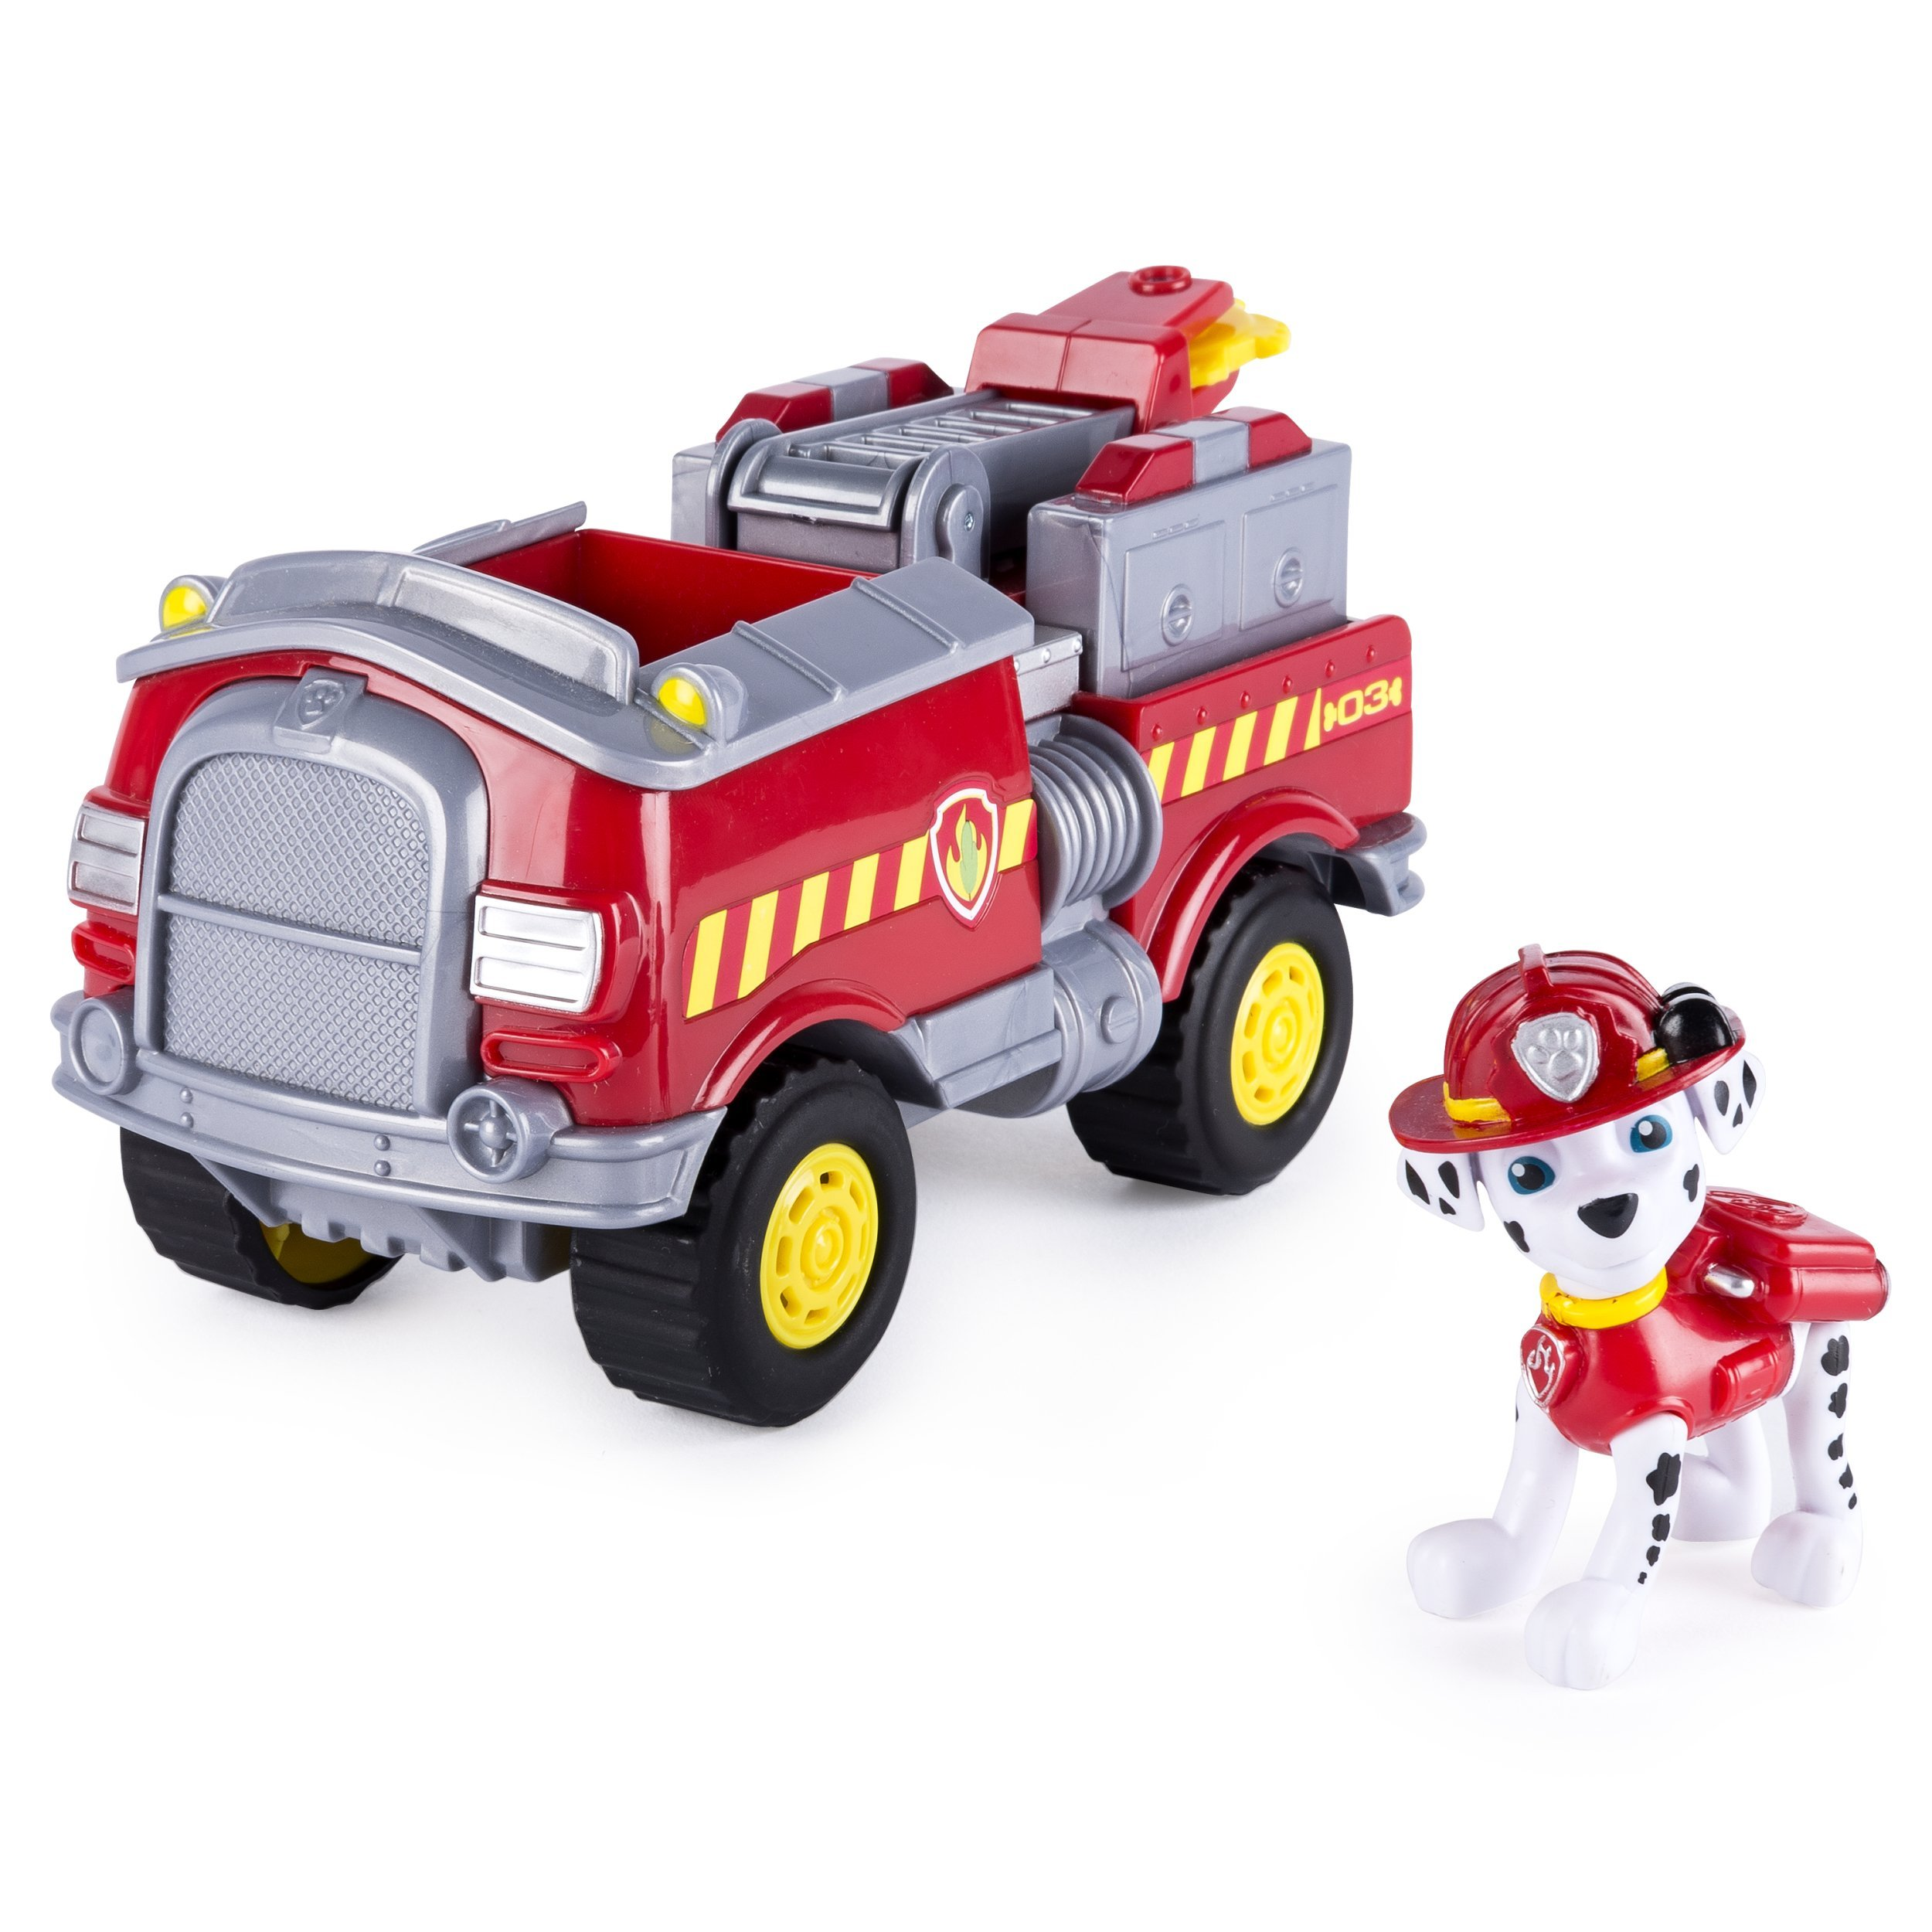 Paw Patrol - Marshall's Forest Fire Truck Vehicle - Figure and Vehicle by Paw Patrol